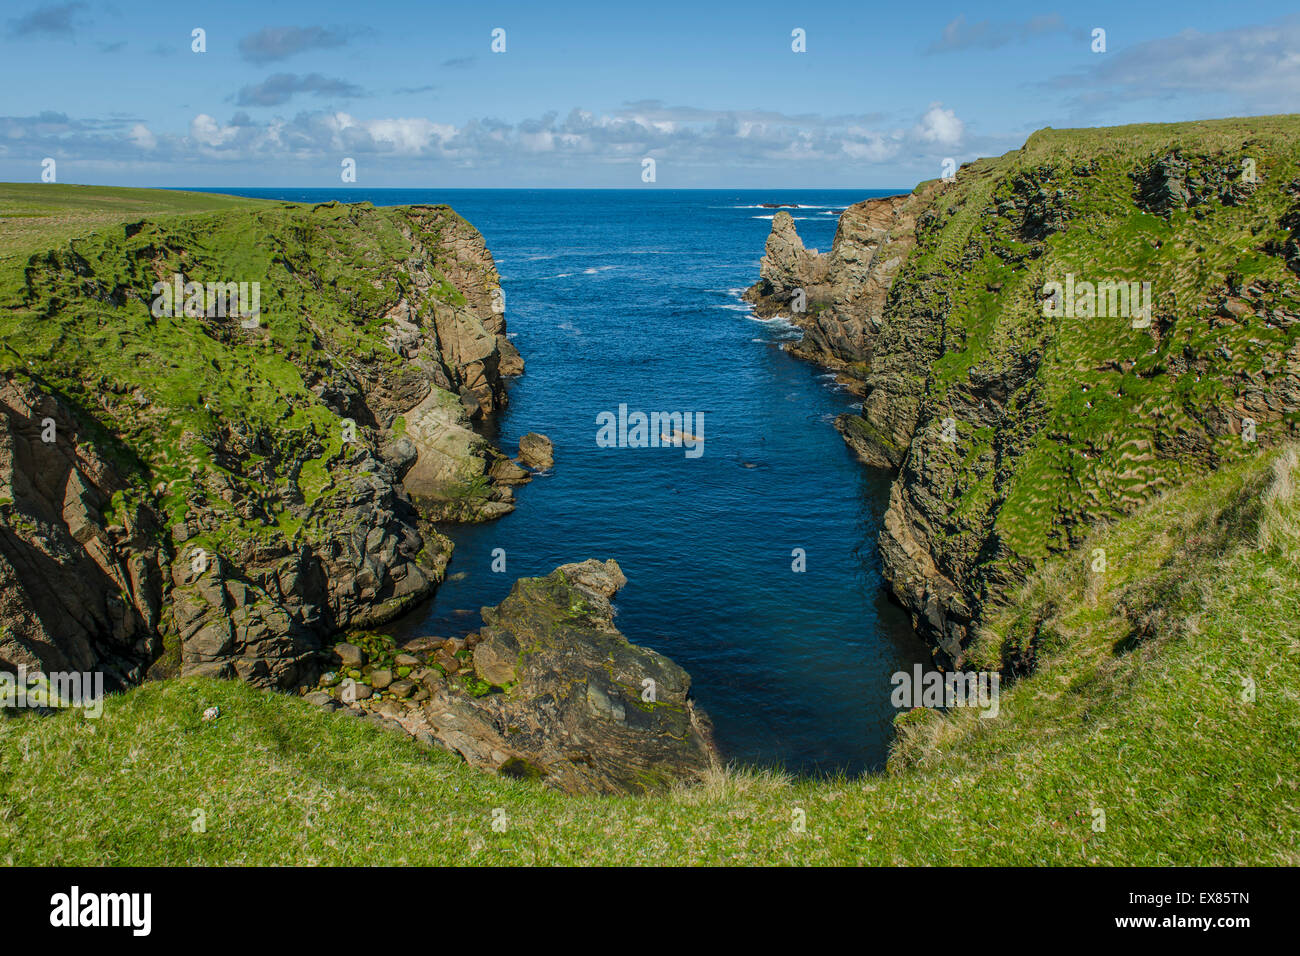 Coastline at the northernmost point of Great Britain, Unst, Shetland Islands, Scotland, United Kingdom - Stock Image